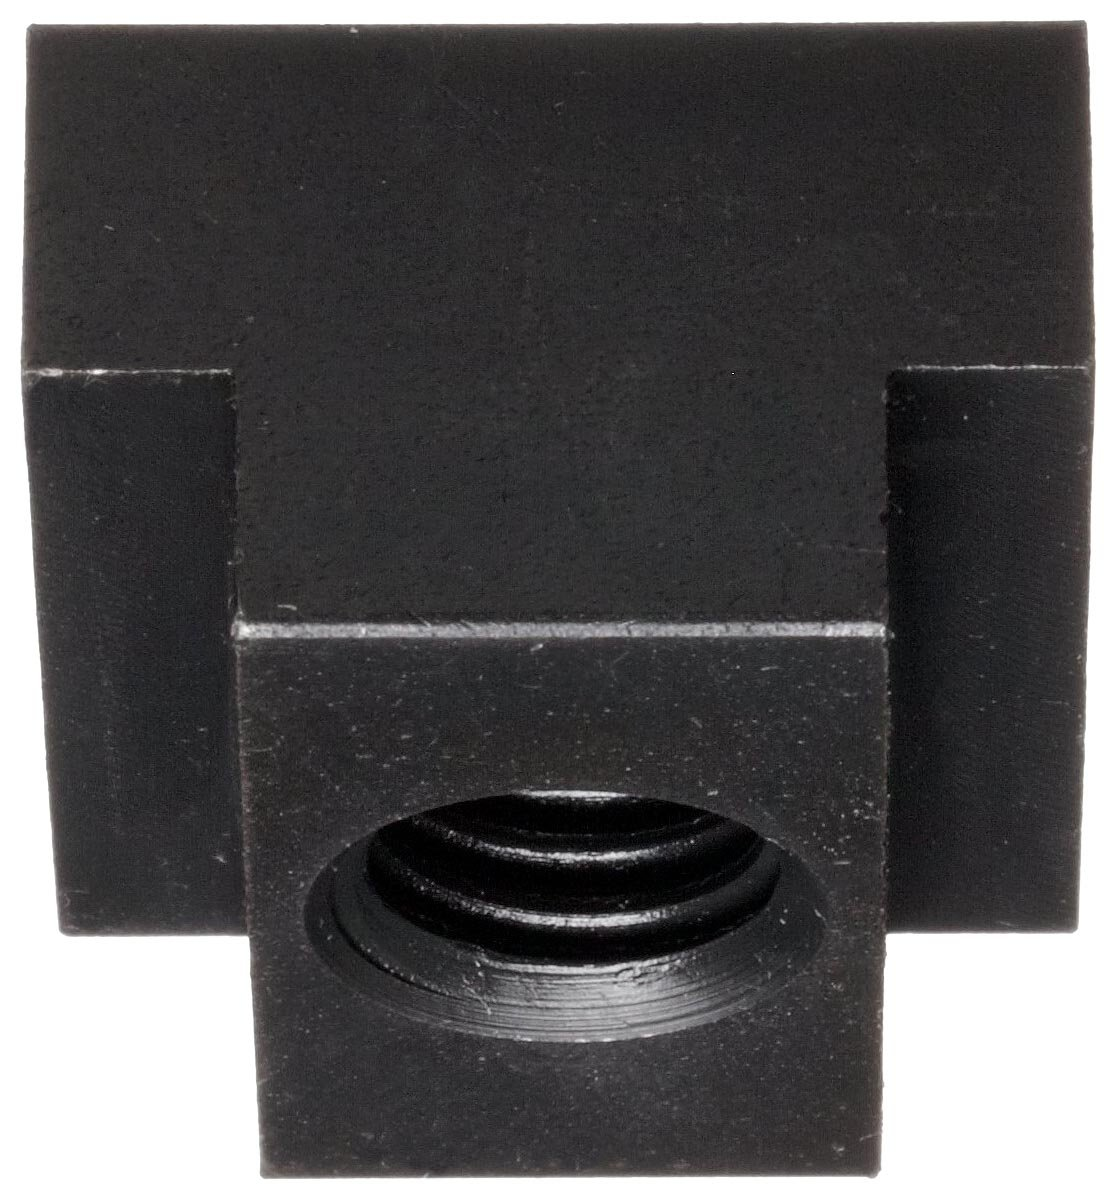 Black Oxide Finish Grade 8 19mm Height Slot Depth Made in US Steel T-Slot Nut Left Hand Threads Class 6H M12 Threads